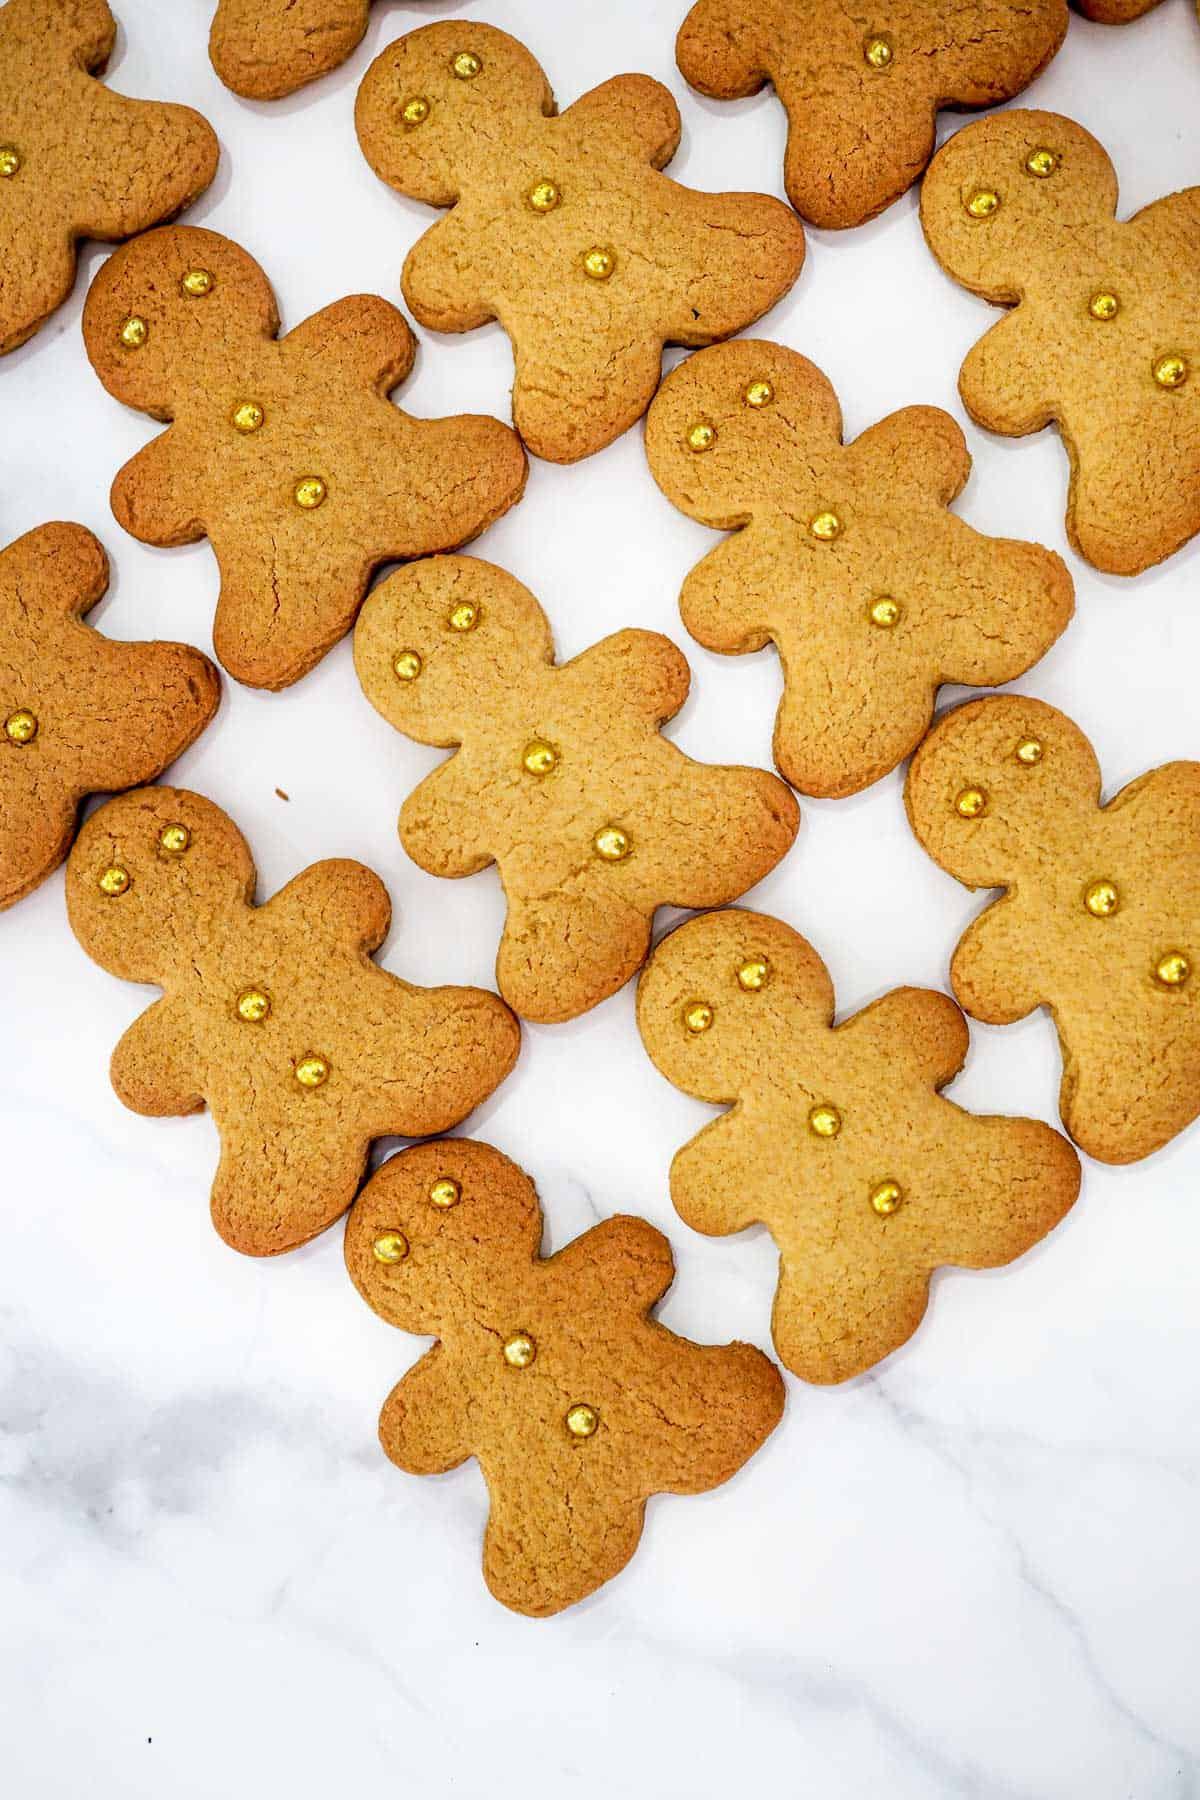 Gingerbread cookies cut into gingerbread men shapes and decorated with gold dragees